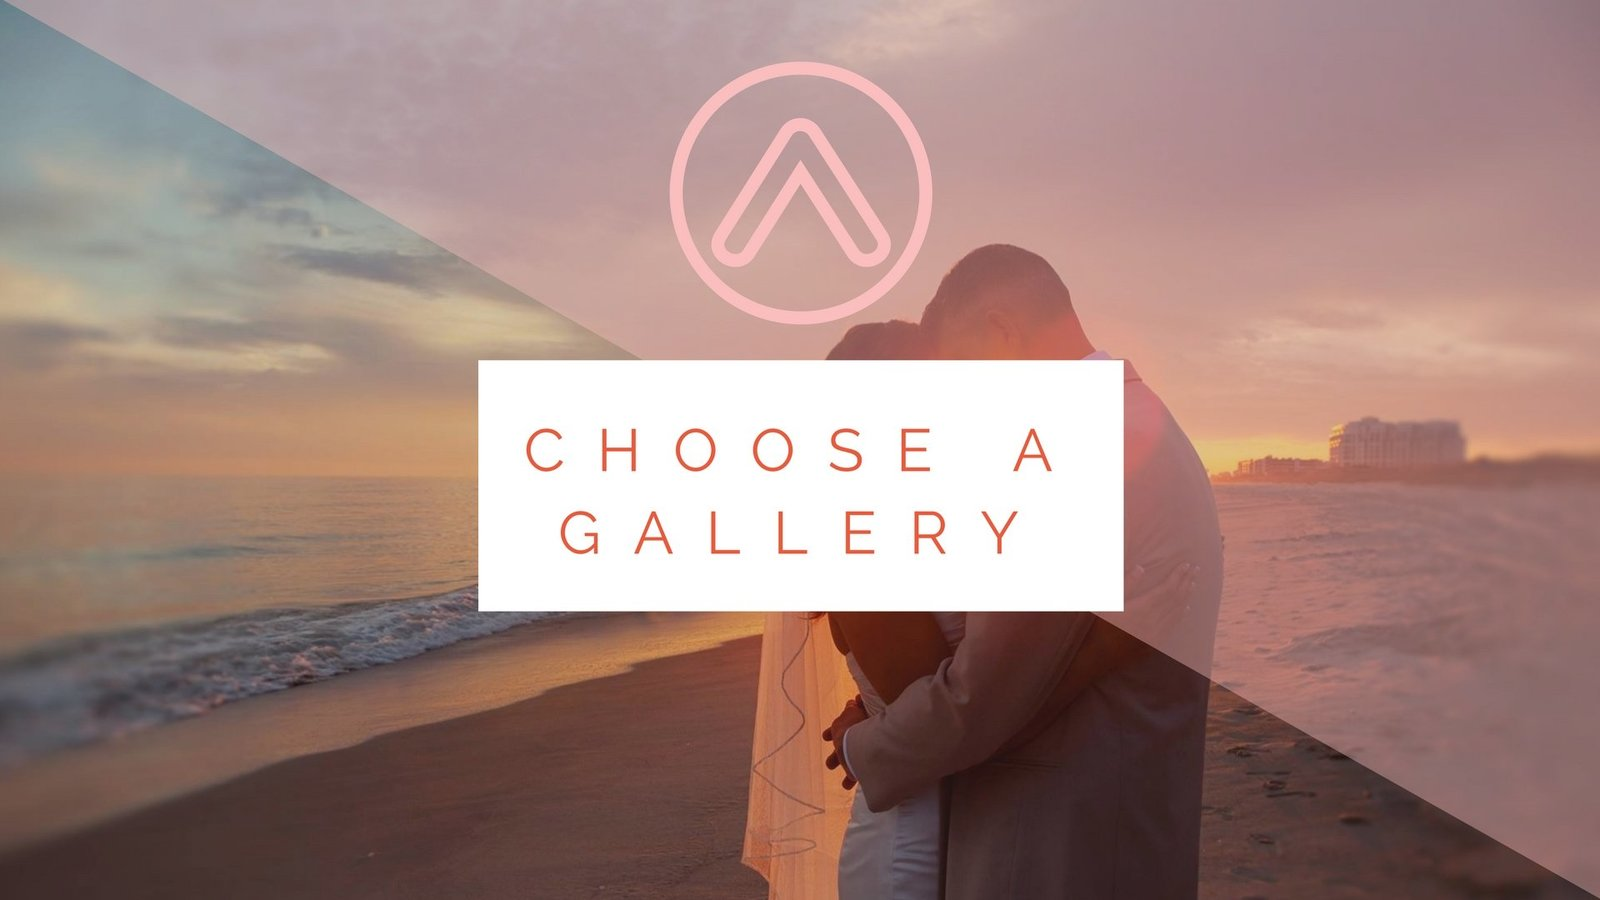 Choose a Gallery